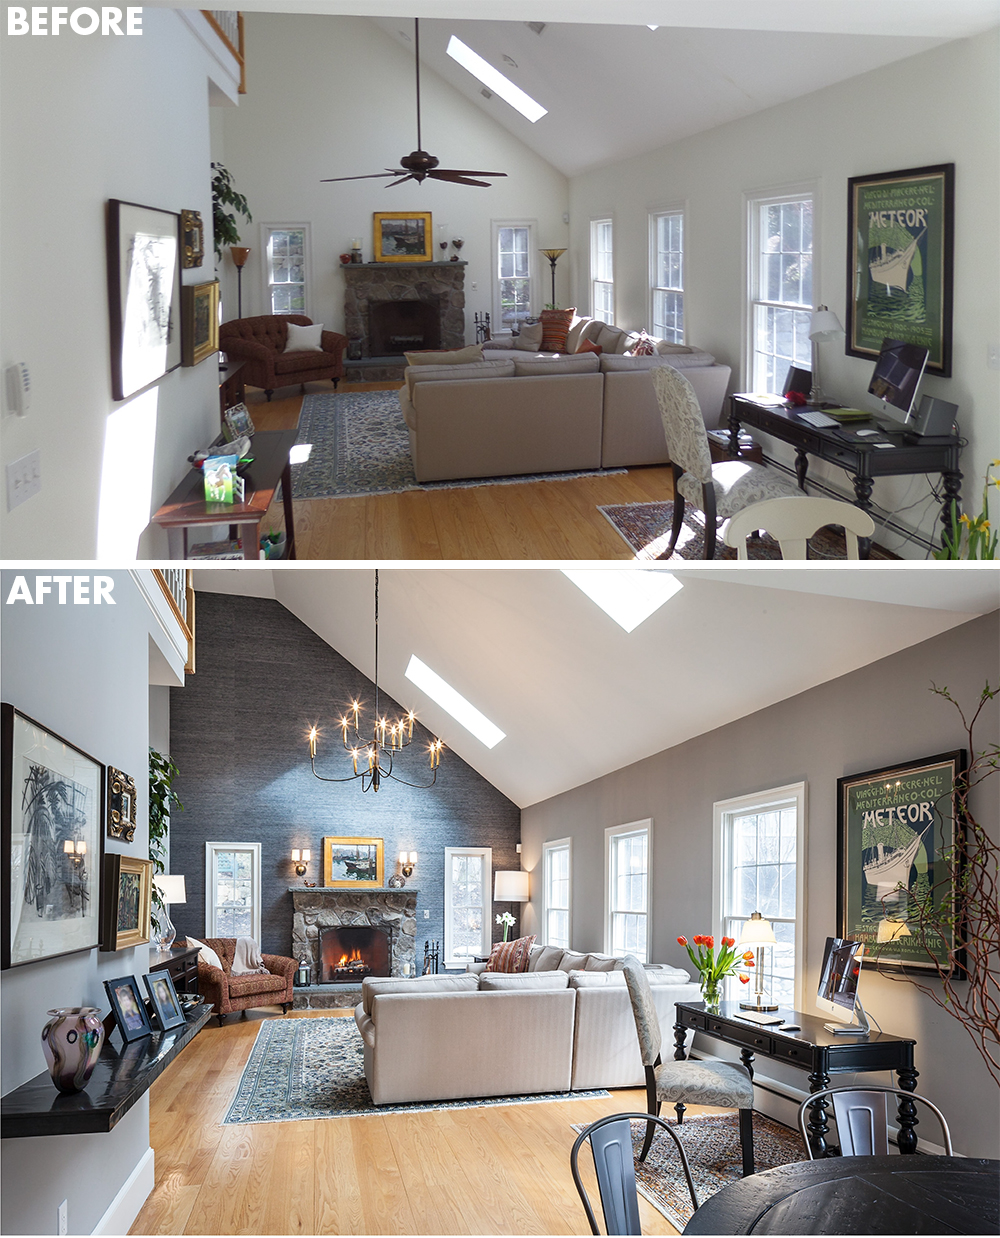 home renovation makeover remodel redo redesign